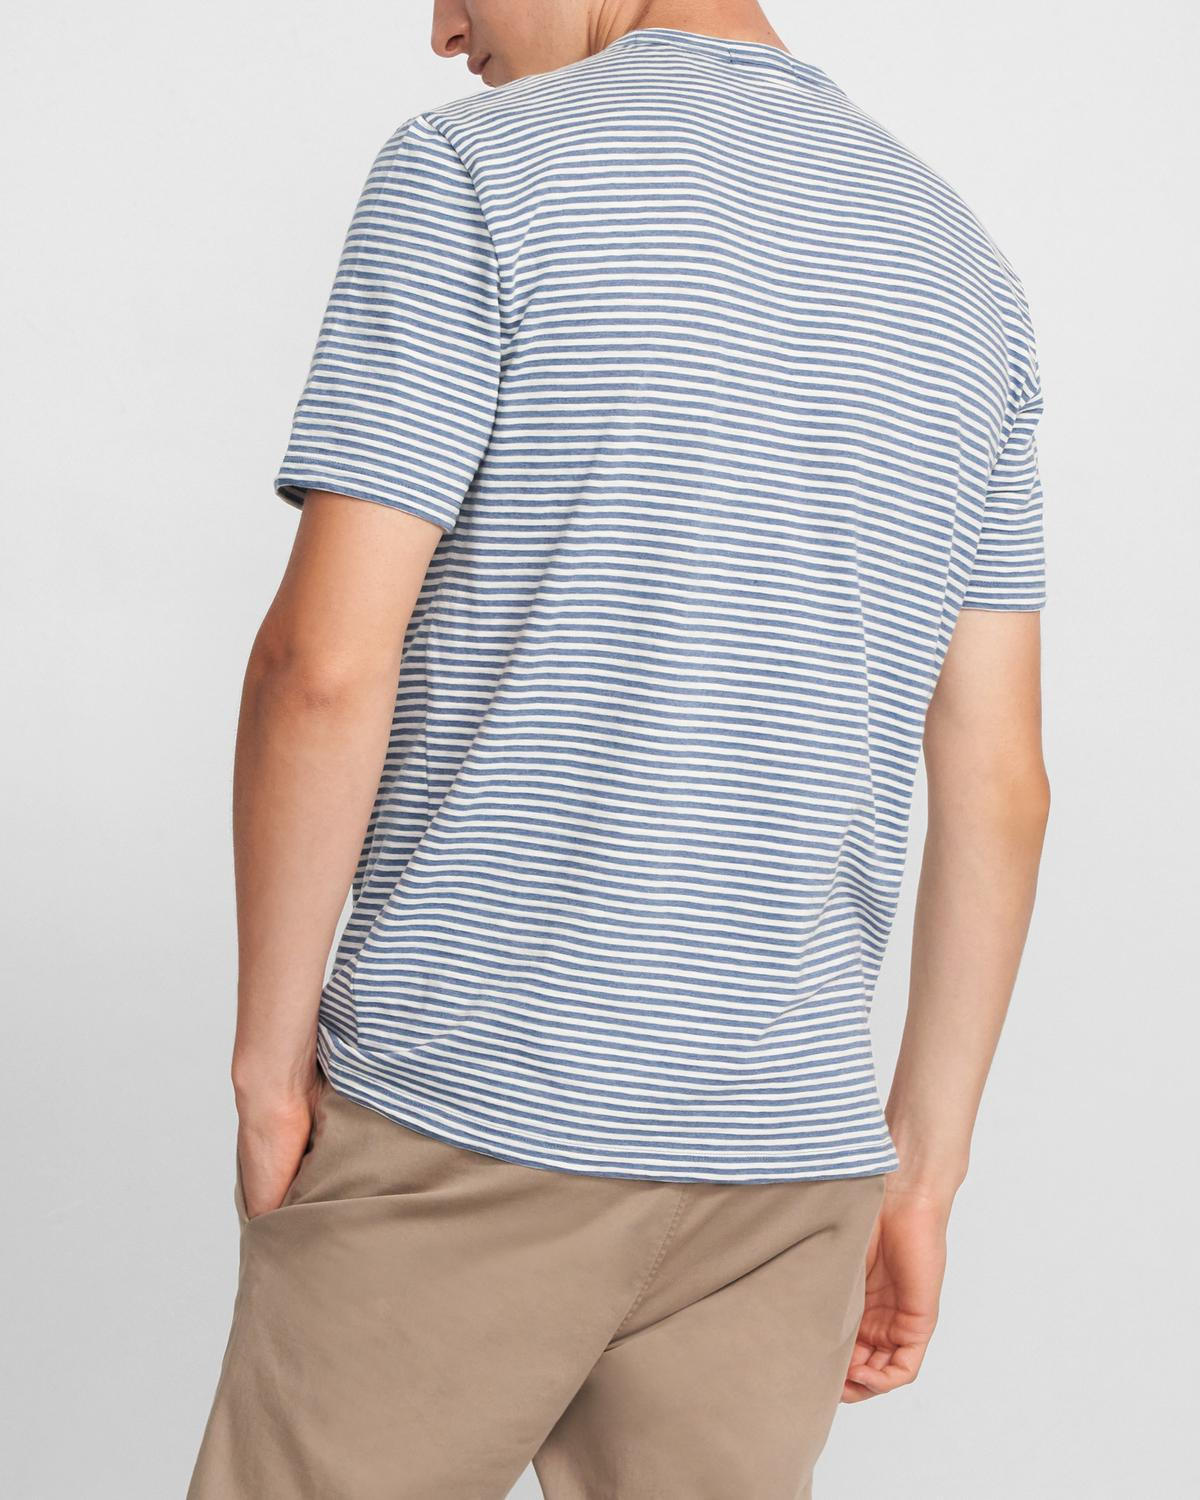 Crewneck Tee in Striped Cotton Blend